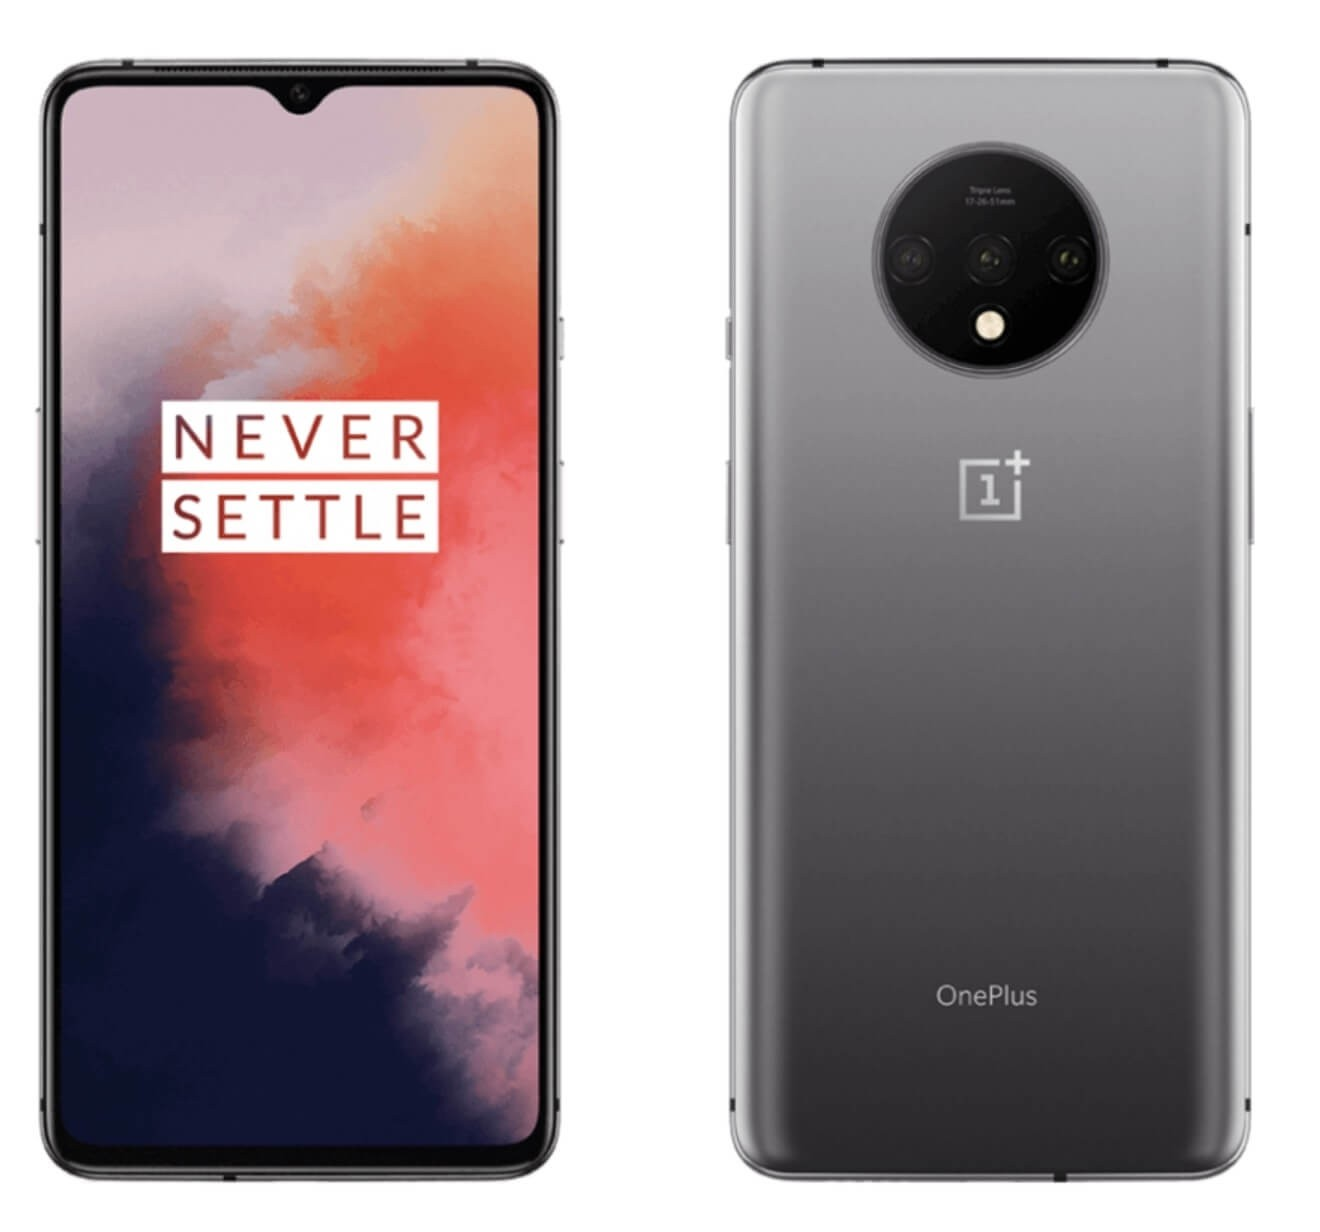 Oneplus 7T - HD1907 - Frosted Silver/Glacier Blue - 128GB - T-Mobile Unlocked